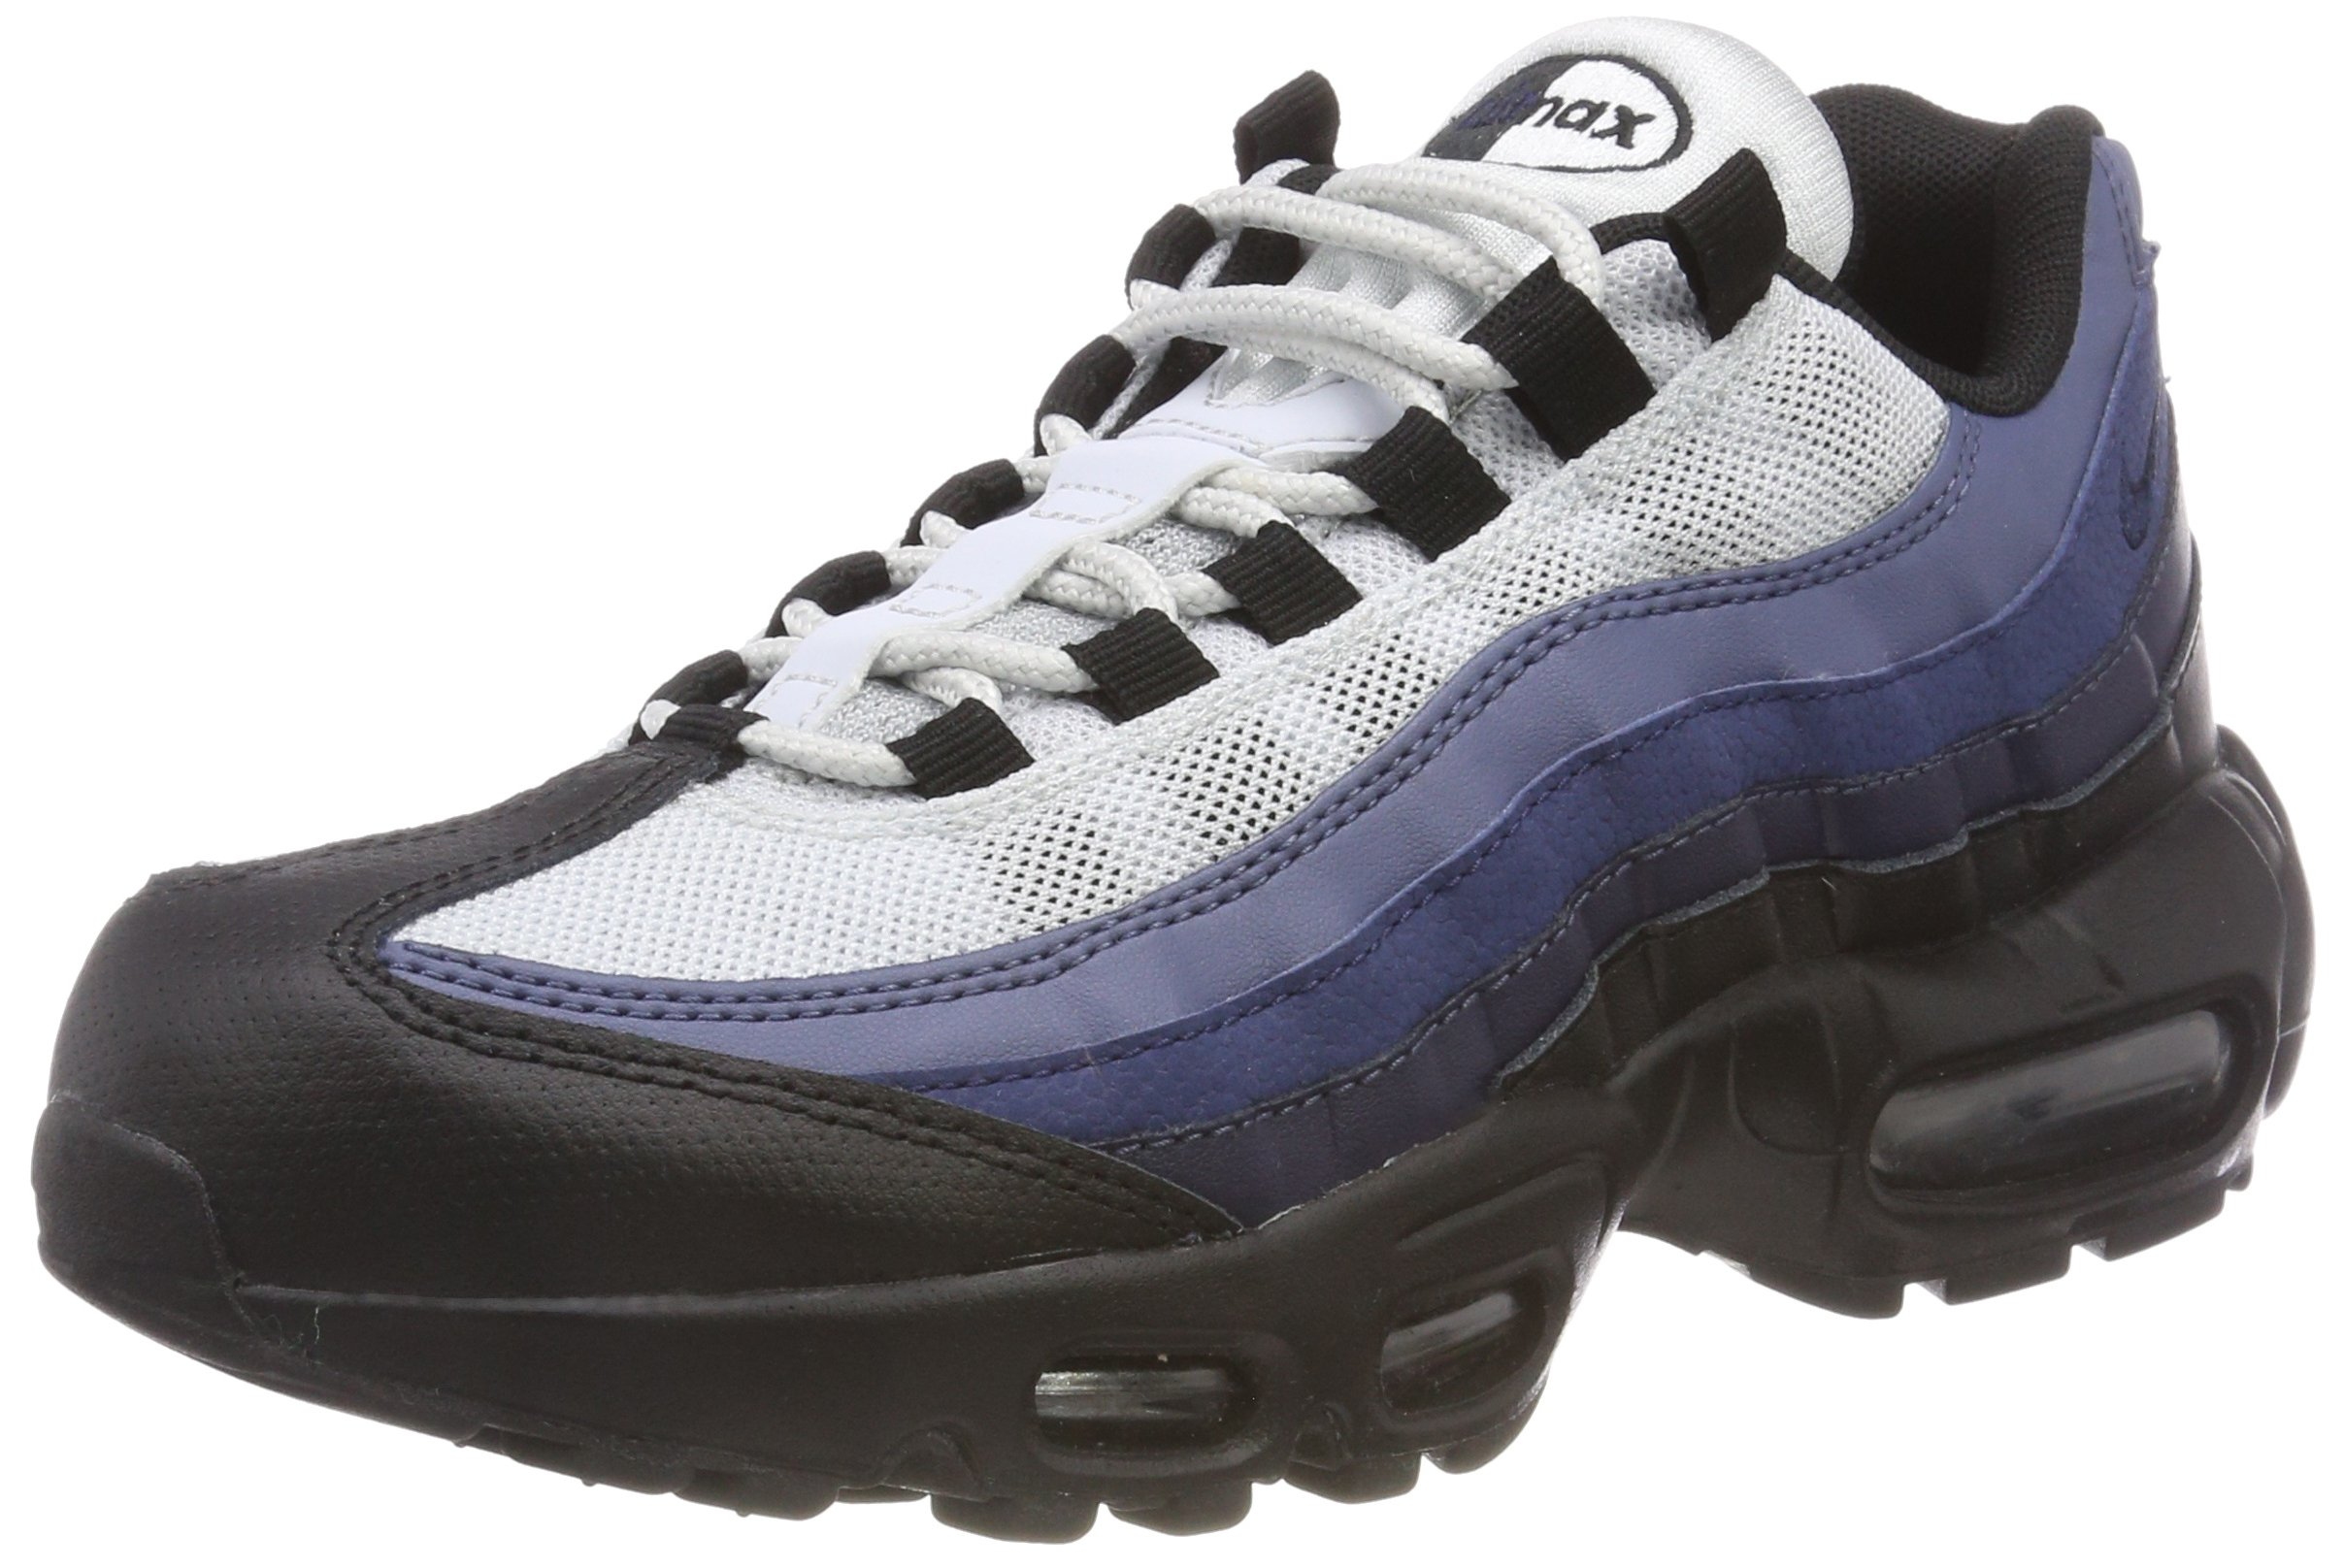 big sale 880fd 84ad5 Galleon - Nike Air Max 95 Men s Essential Shoes Black Obsidian Navy Blue  749766-028 (12 D(M) US)